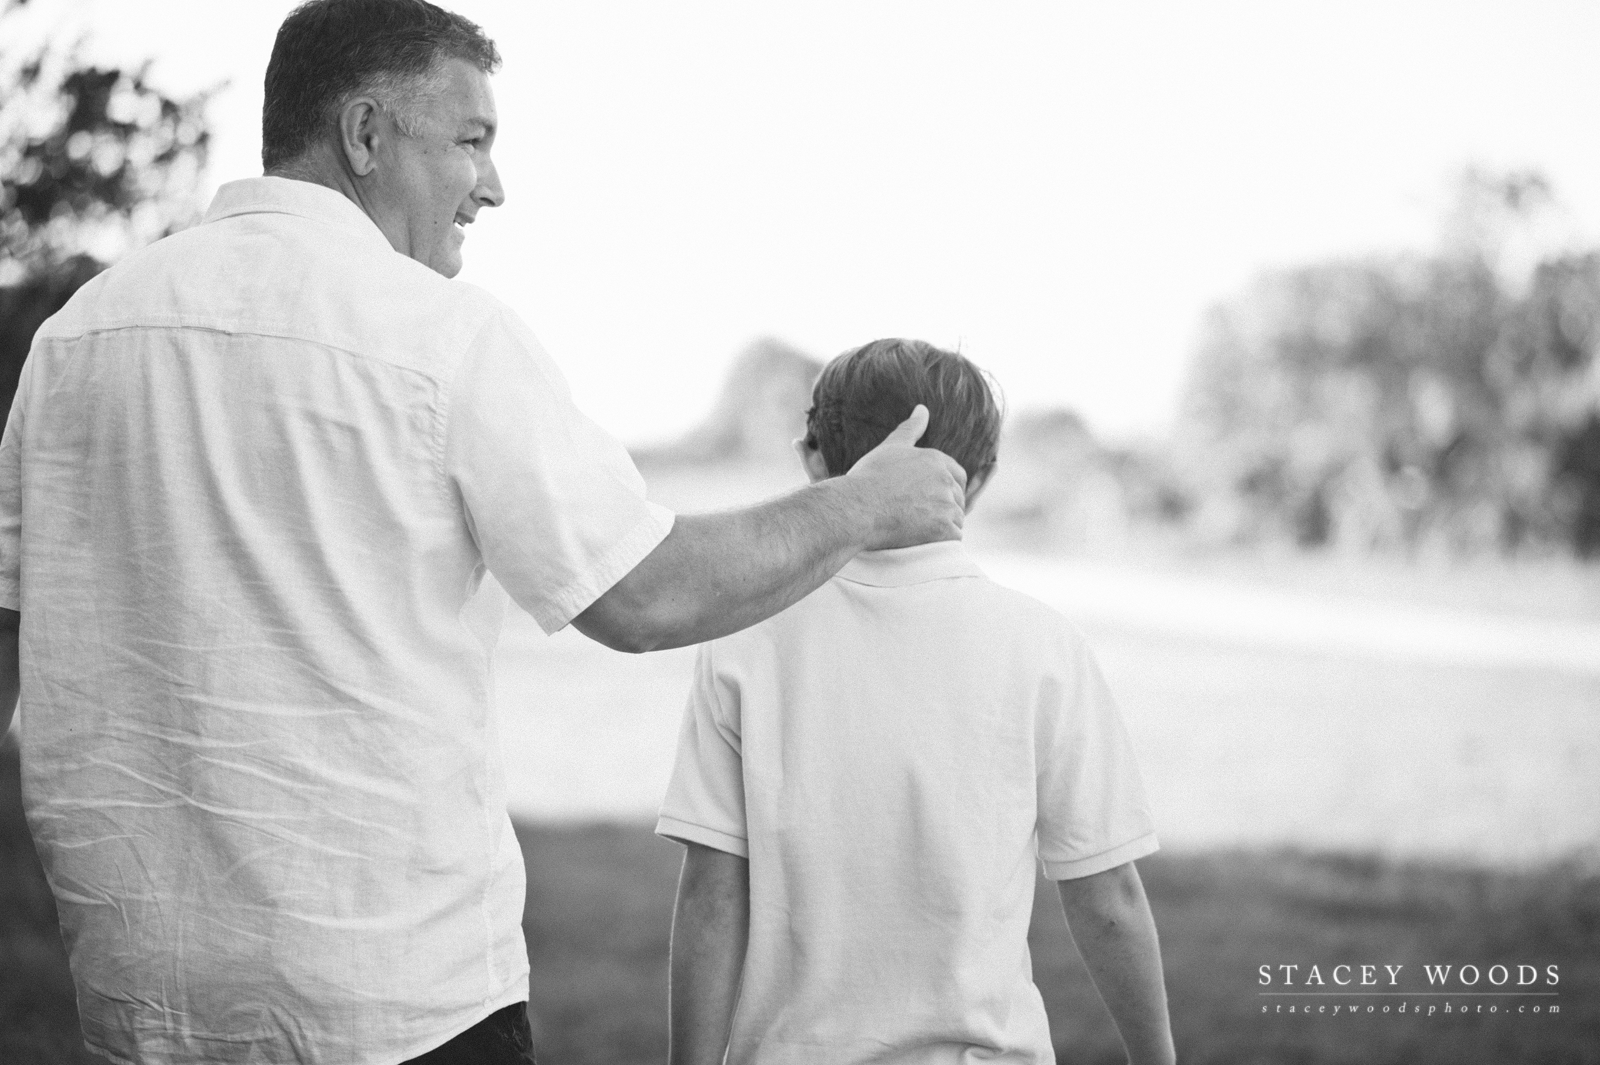 Dad and Son, lifestyle photography by Stacey Woods